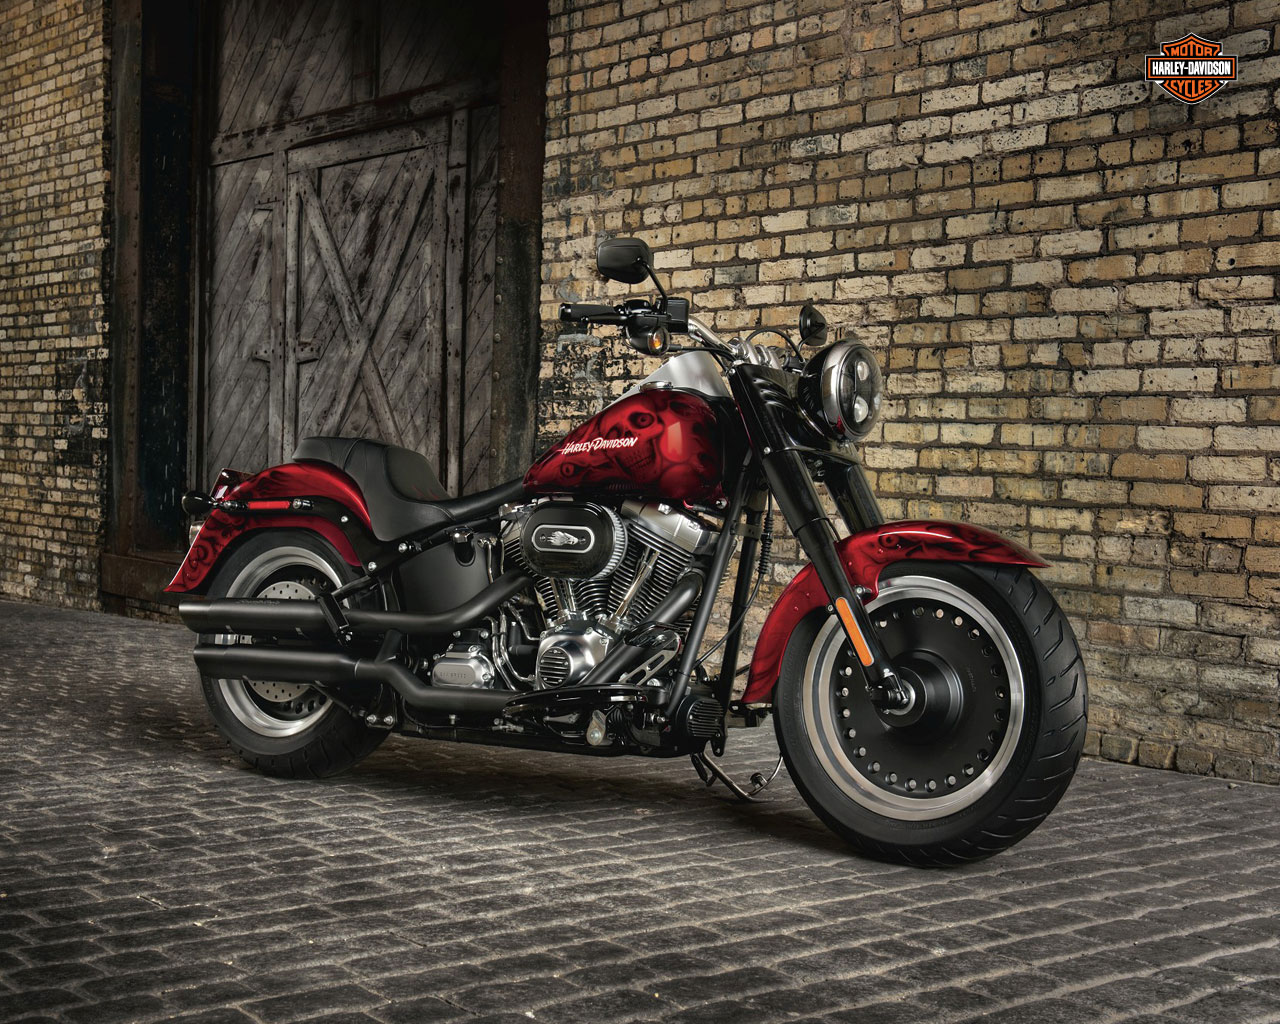 Harley Davidson Motorcycles Wallpaper